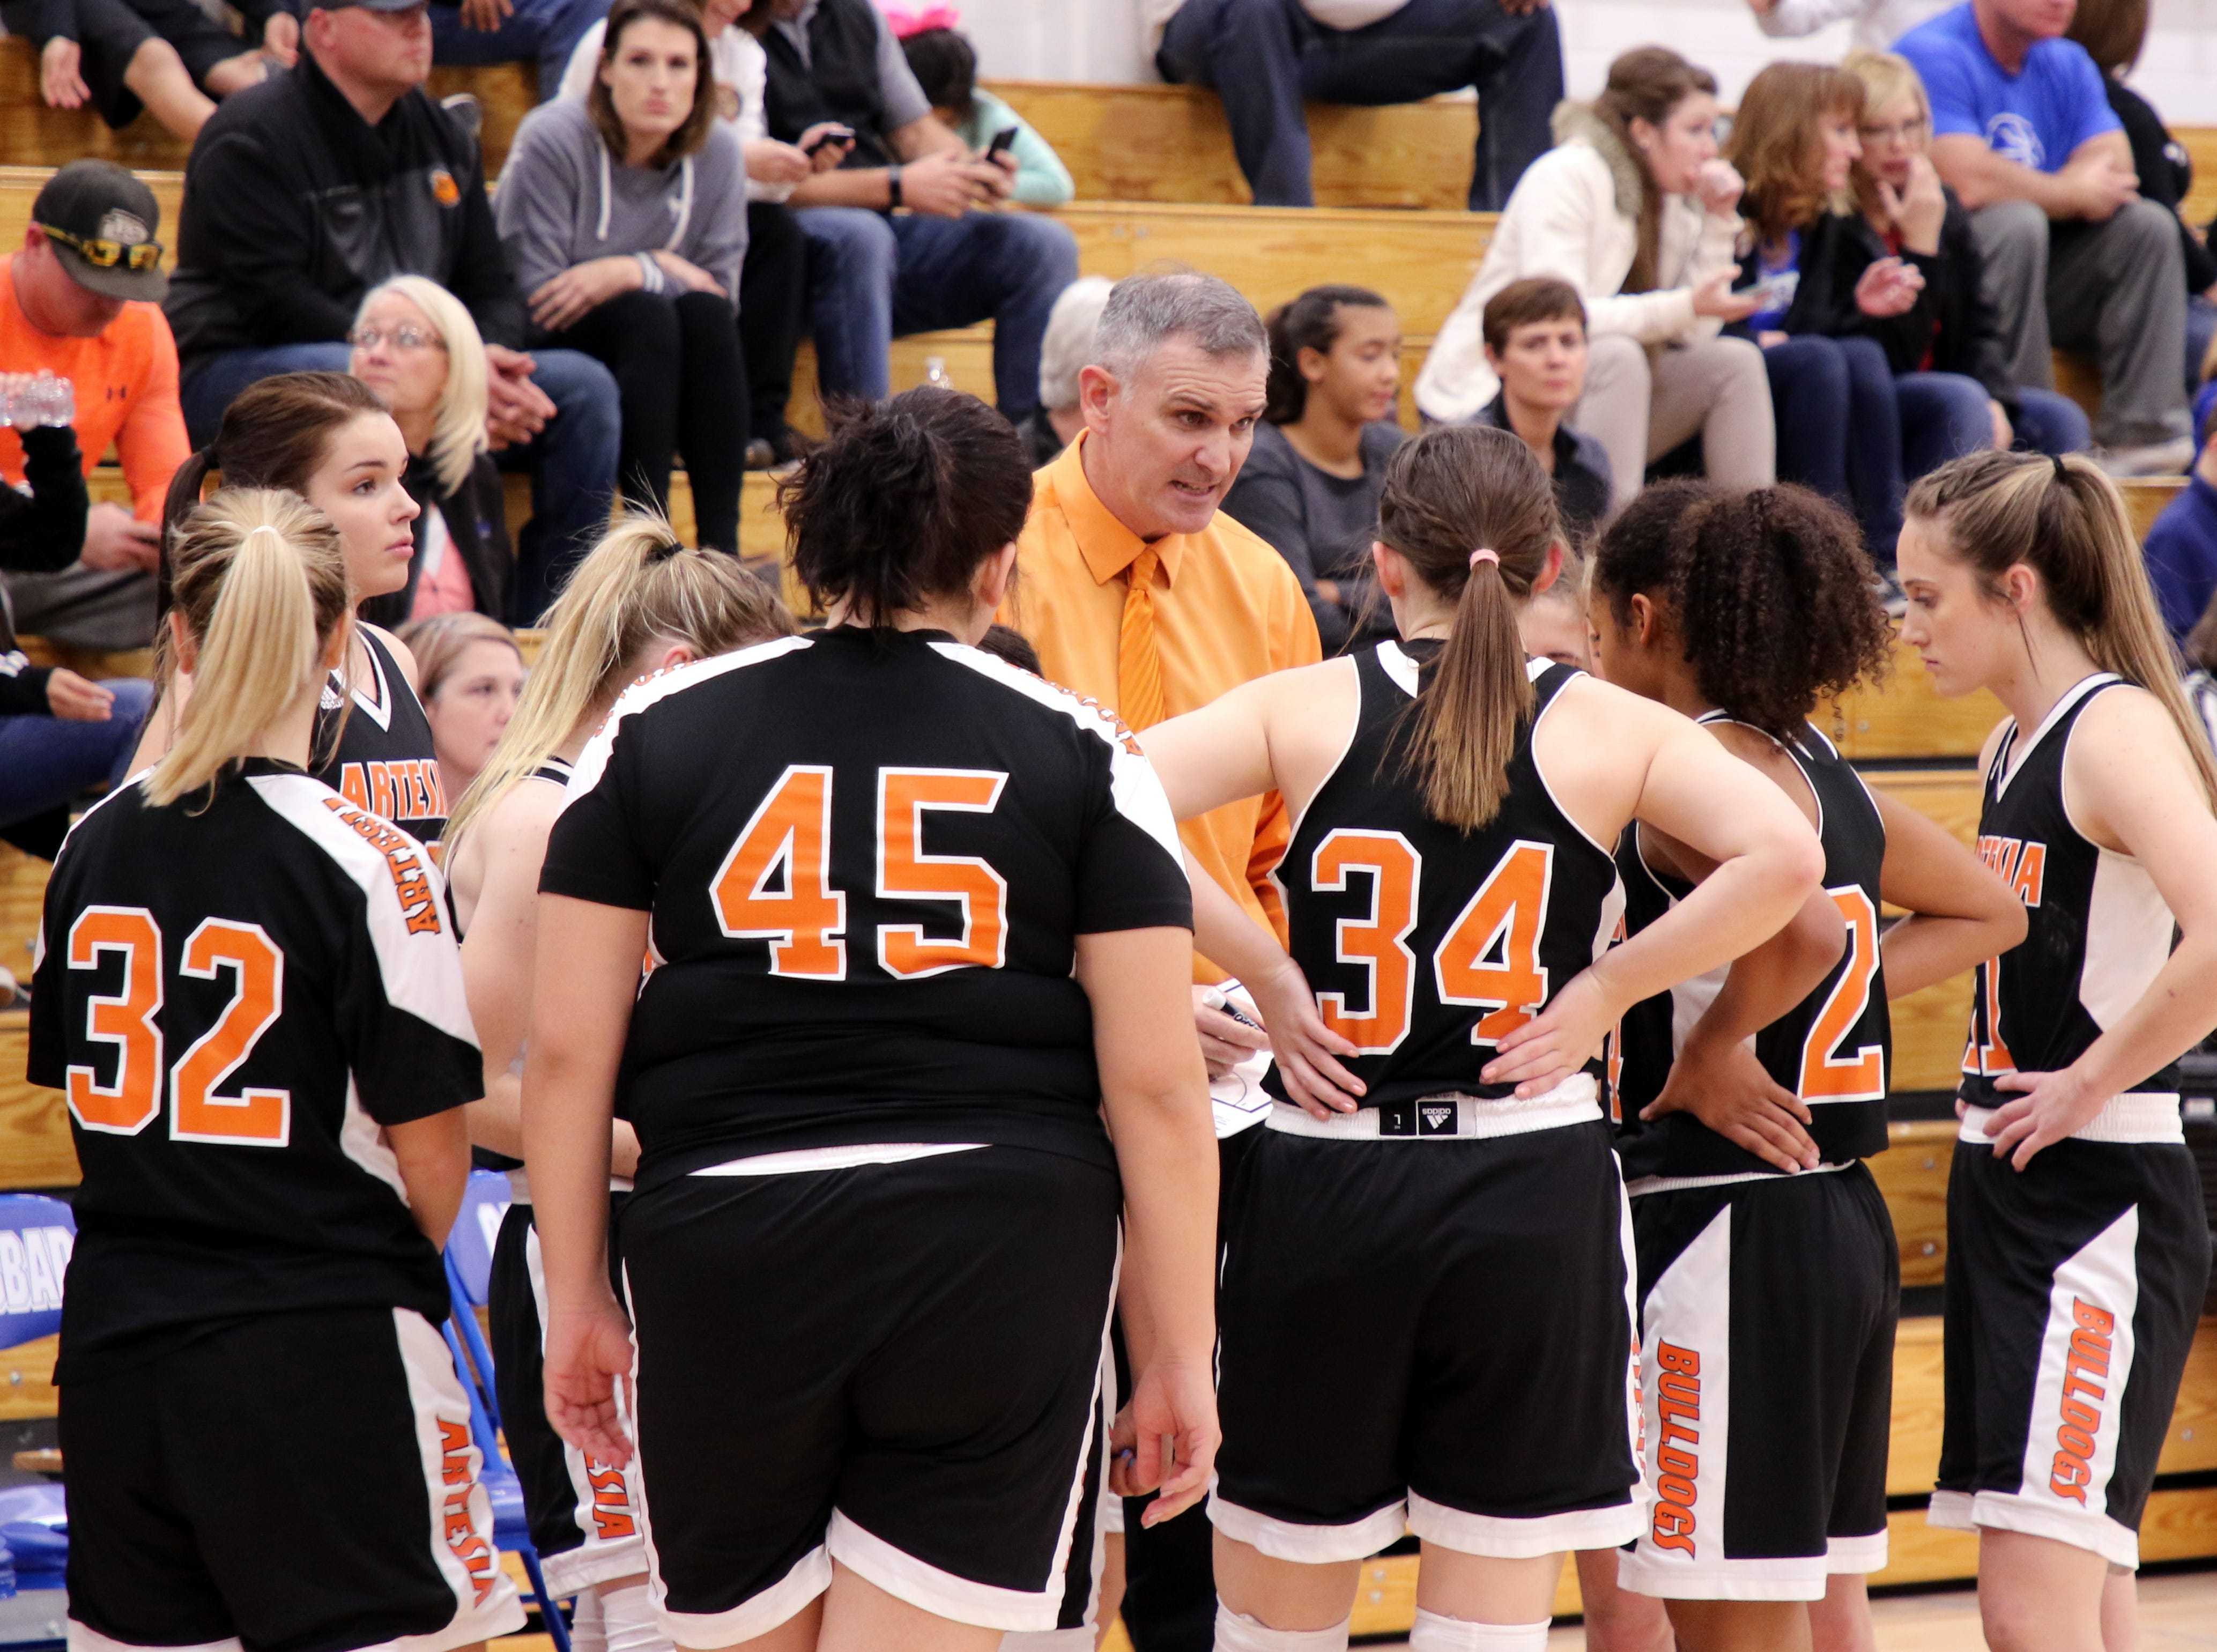 Artesia coach Jeff Houghtaling talks to his team during a timeout in Tuesday's game against Carlsbad.